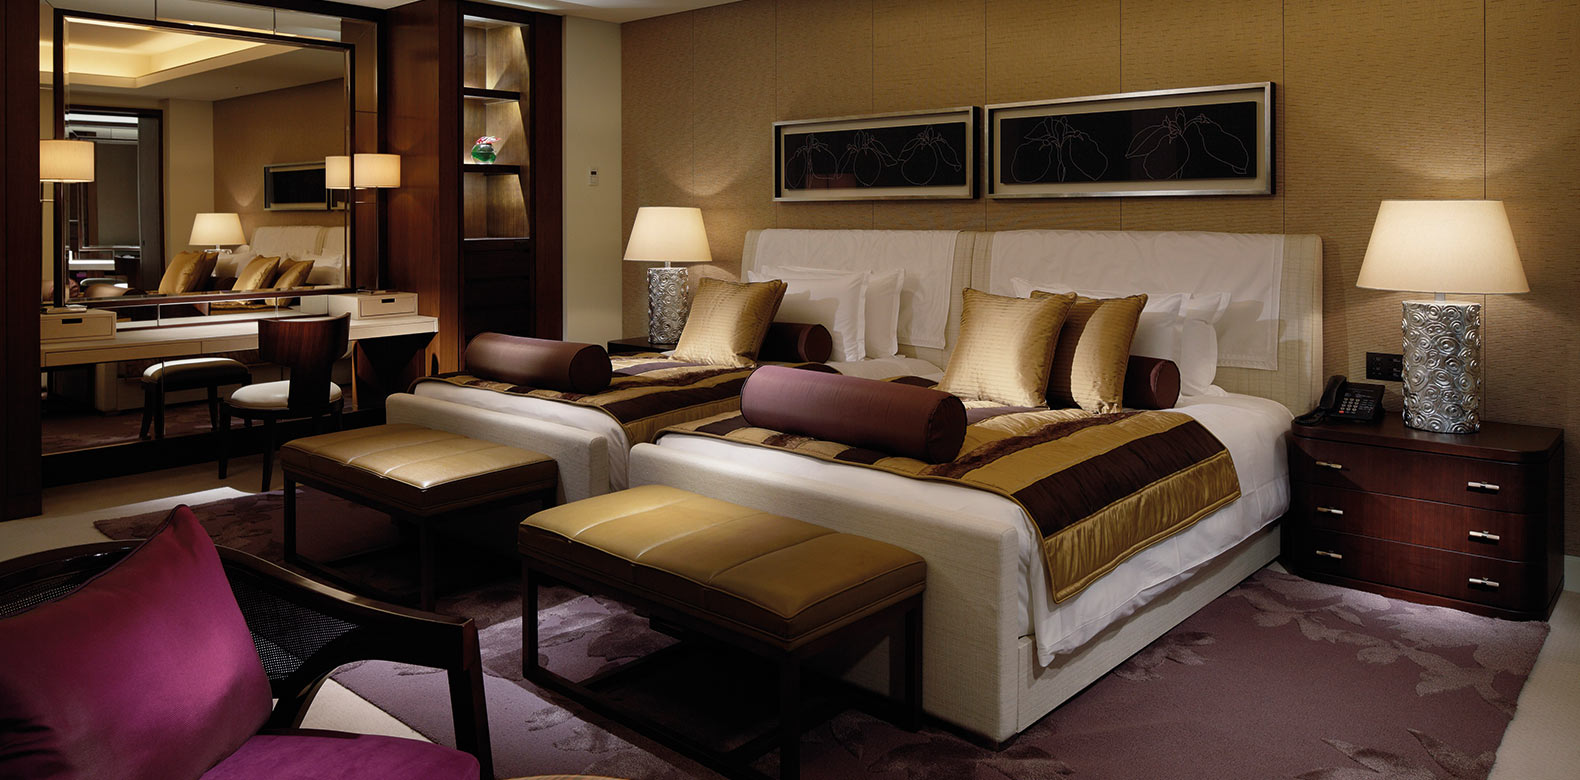 Palace-Hotel-Tokyo-F-Palace-Suite-Bedroom